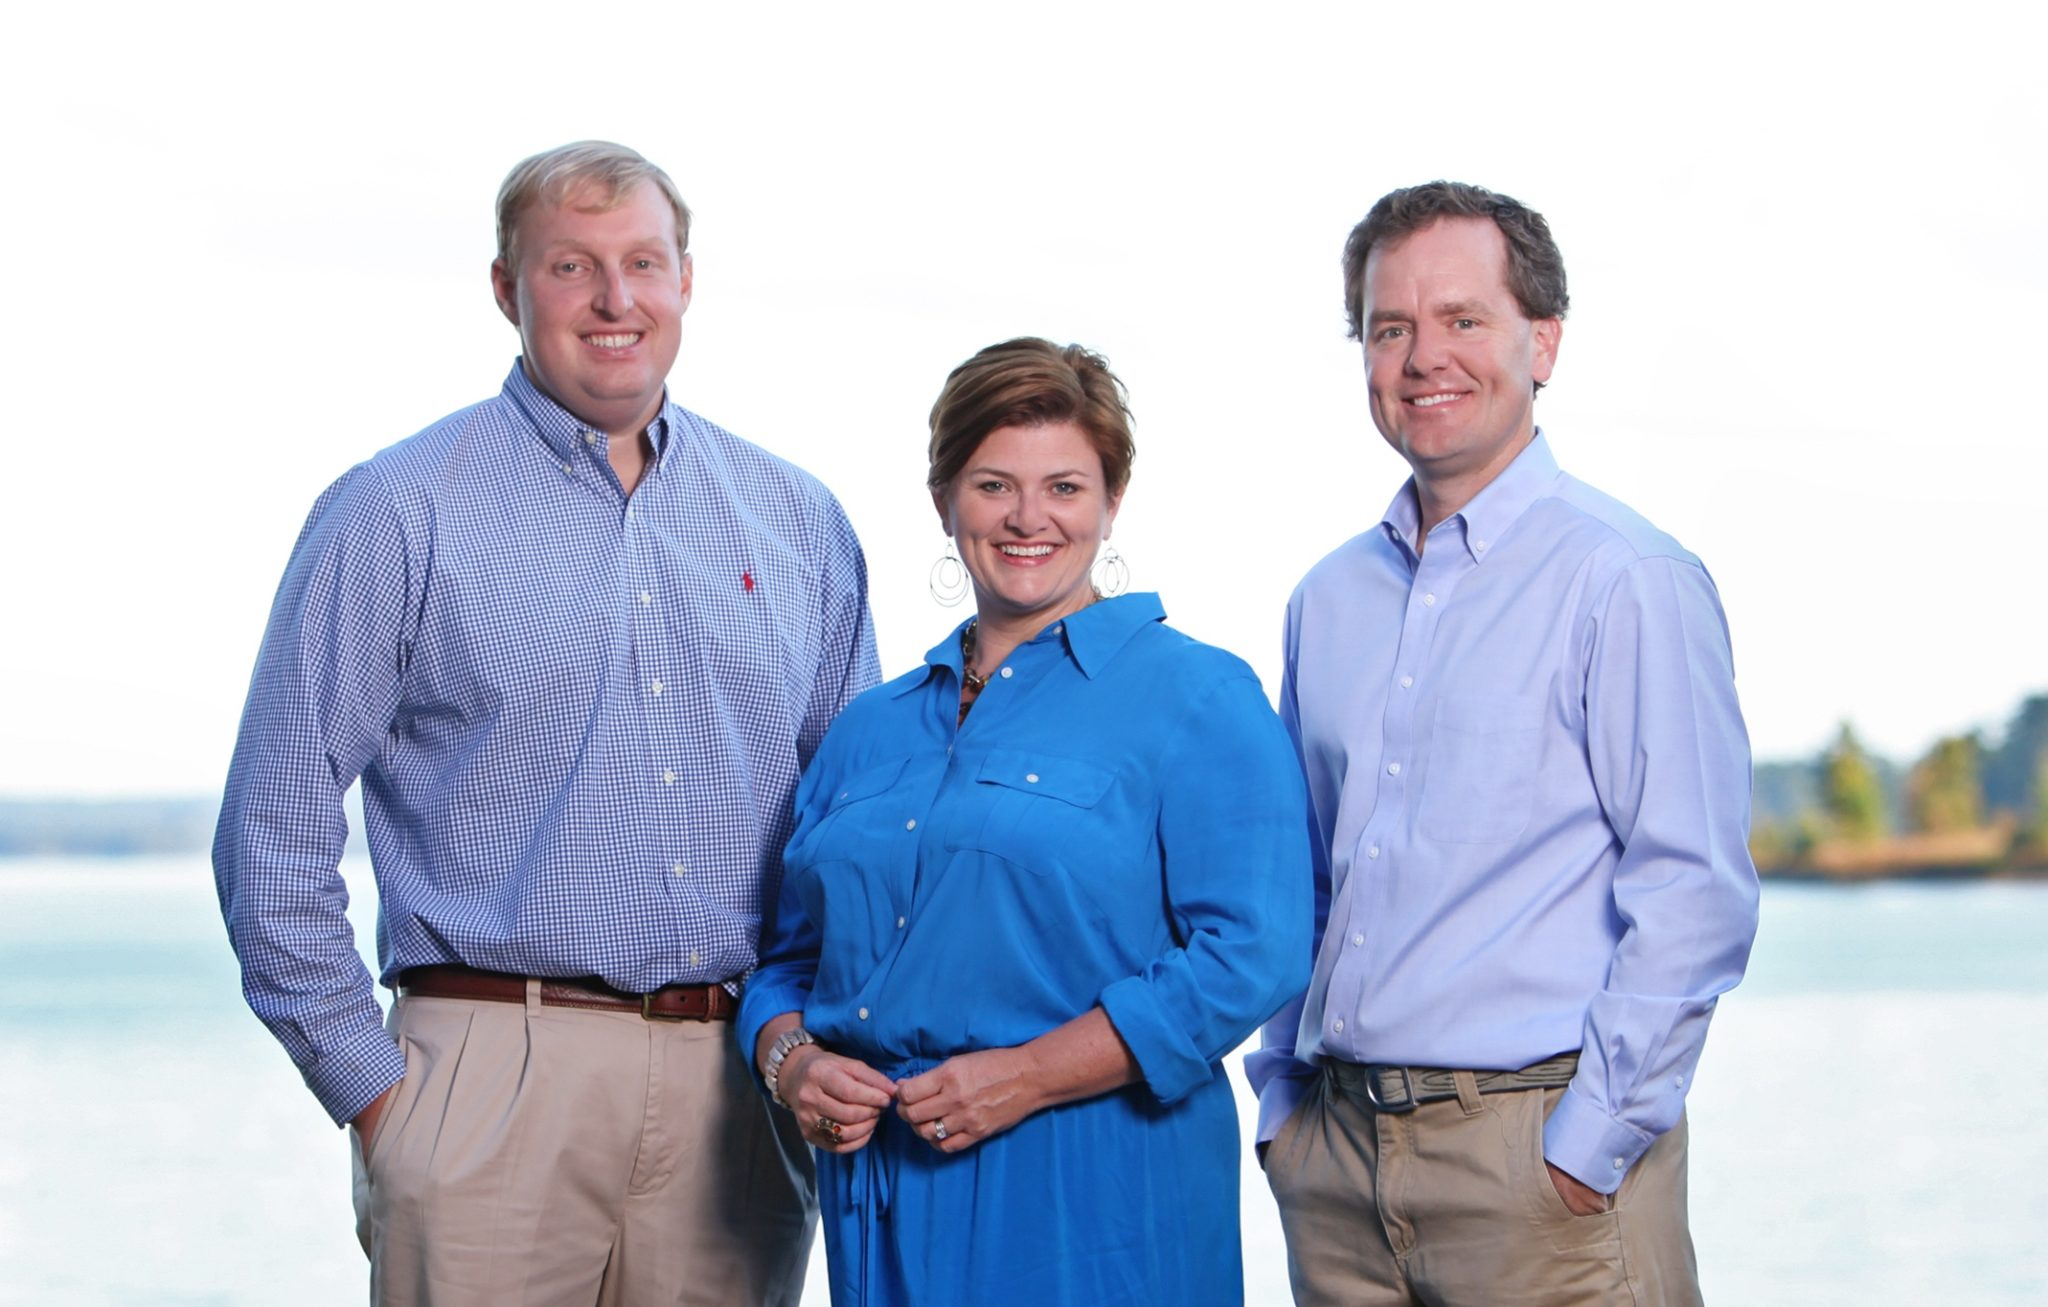 John Christenberry, Agent; Paige Patterson, Agent; John Coley, Agent / Broker / Owner